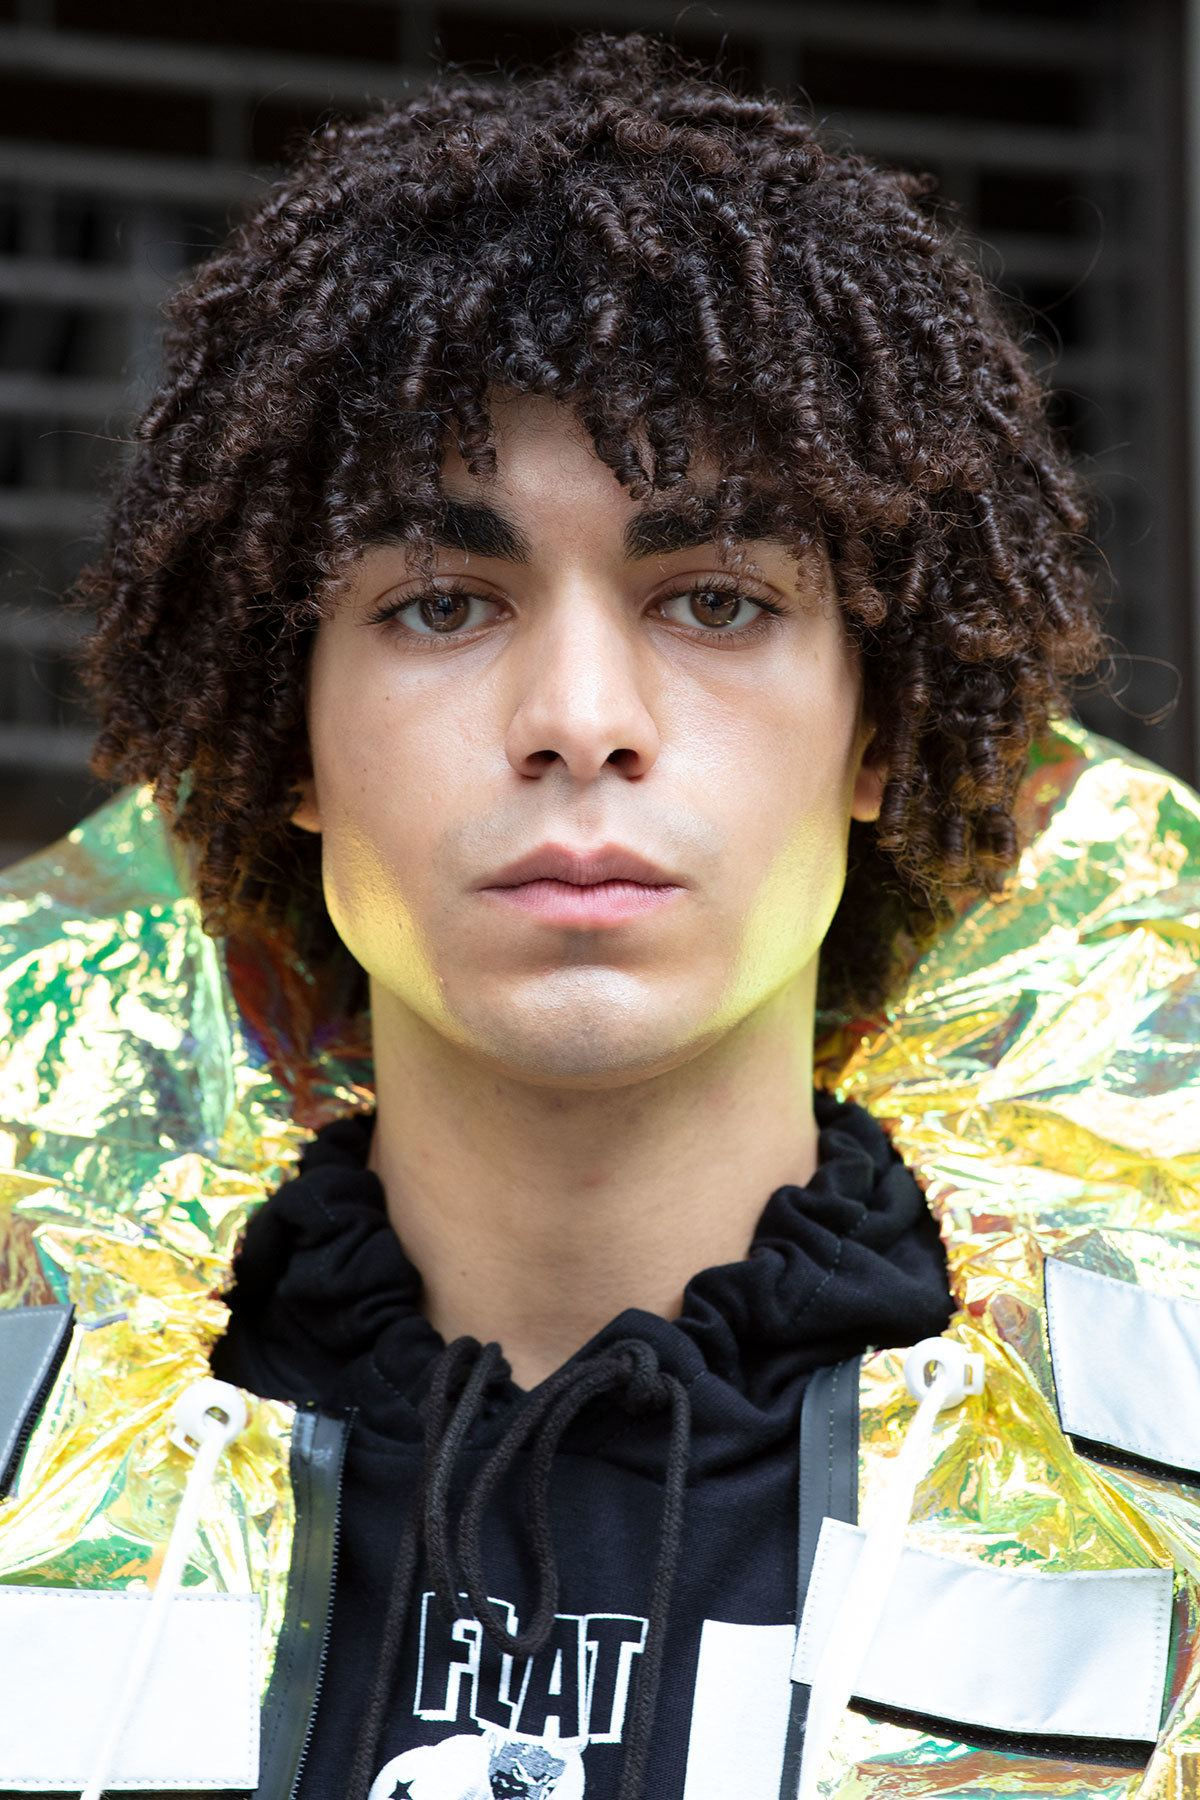 london fashion week men's ss19: close up shot of man with defined ringlet curls, wearing bright raincoat with ruffled neck and posing on the street